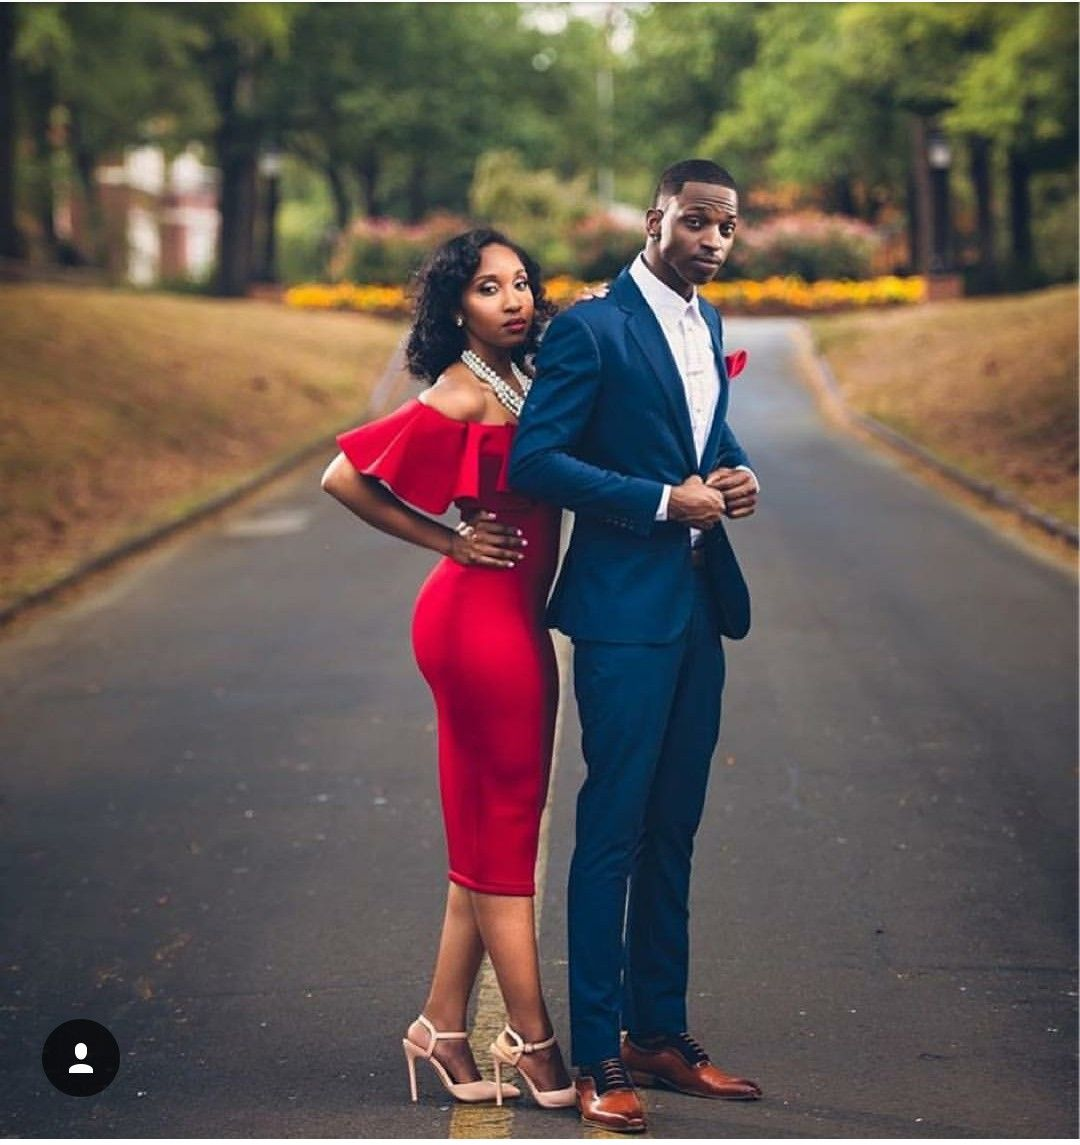 Engagement Photo Outfits: Black Love Couples